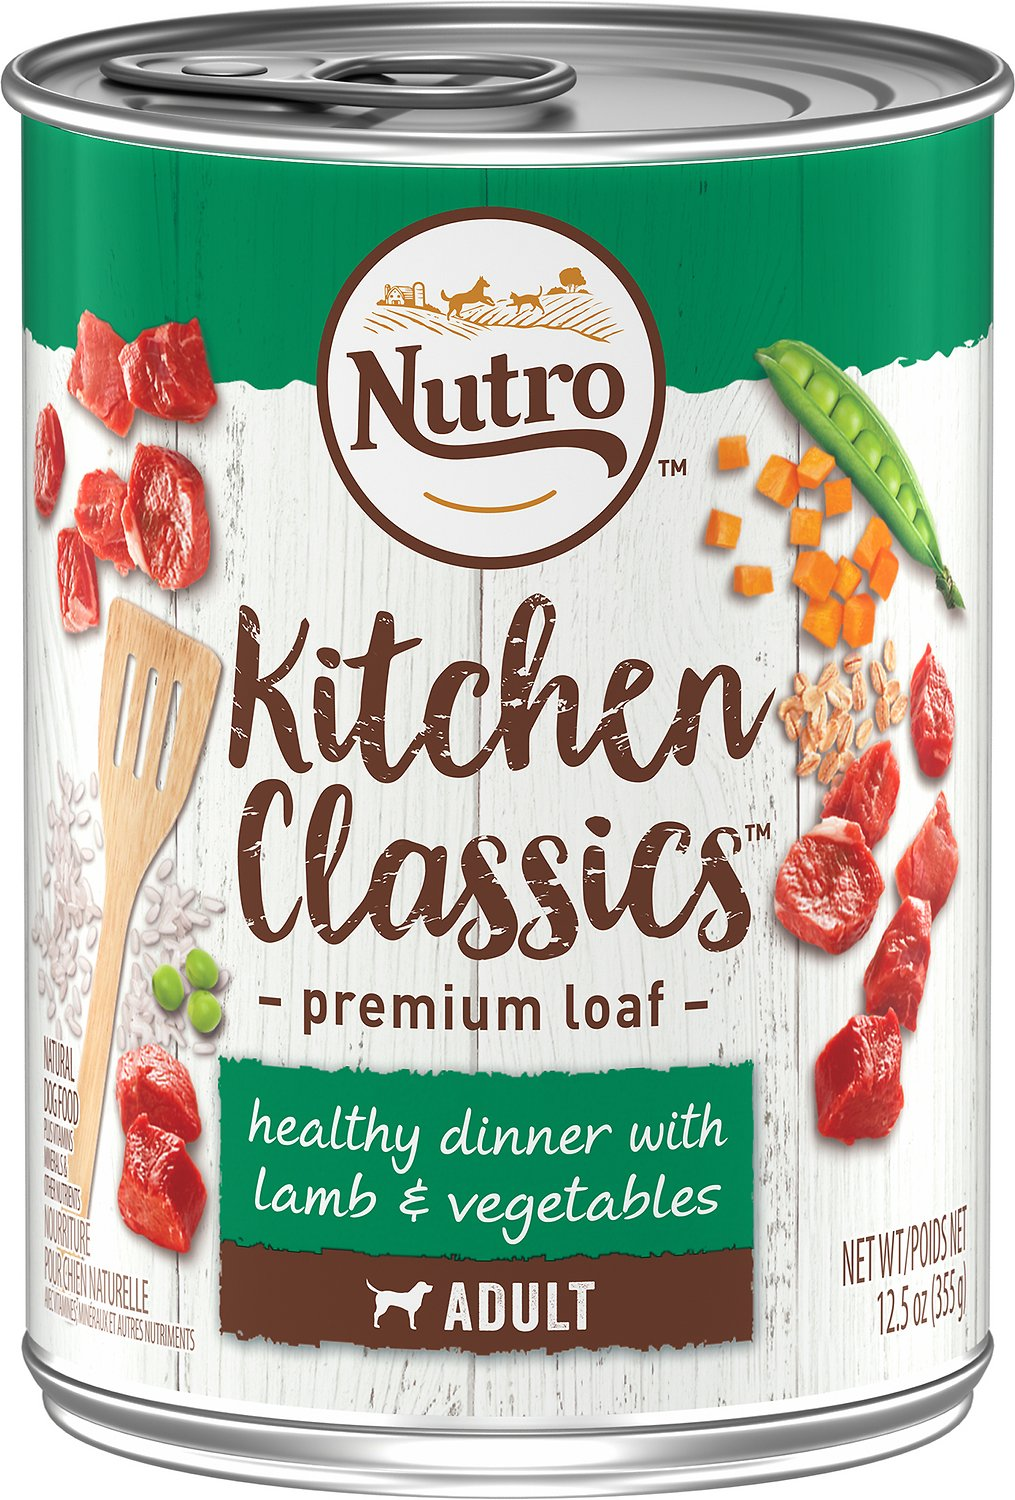 Nutro Adult Kitchen Classics Healthy Dinner With Lamb & Vegetables Canned Dog Food, 12.5-oz